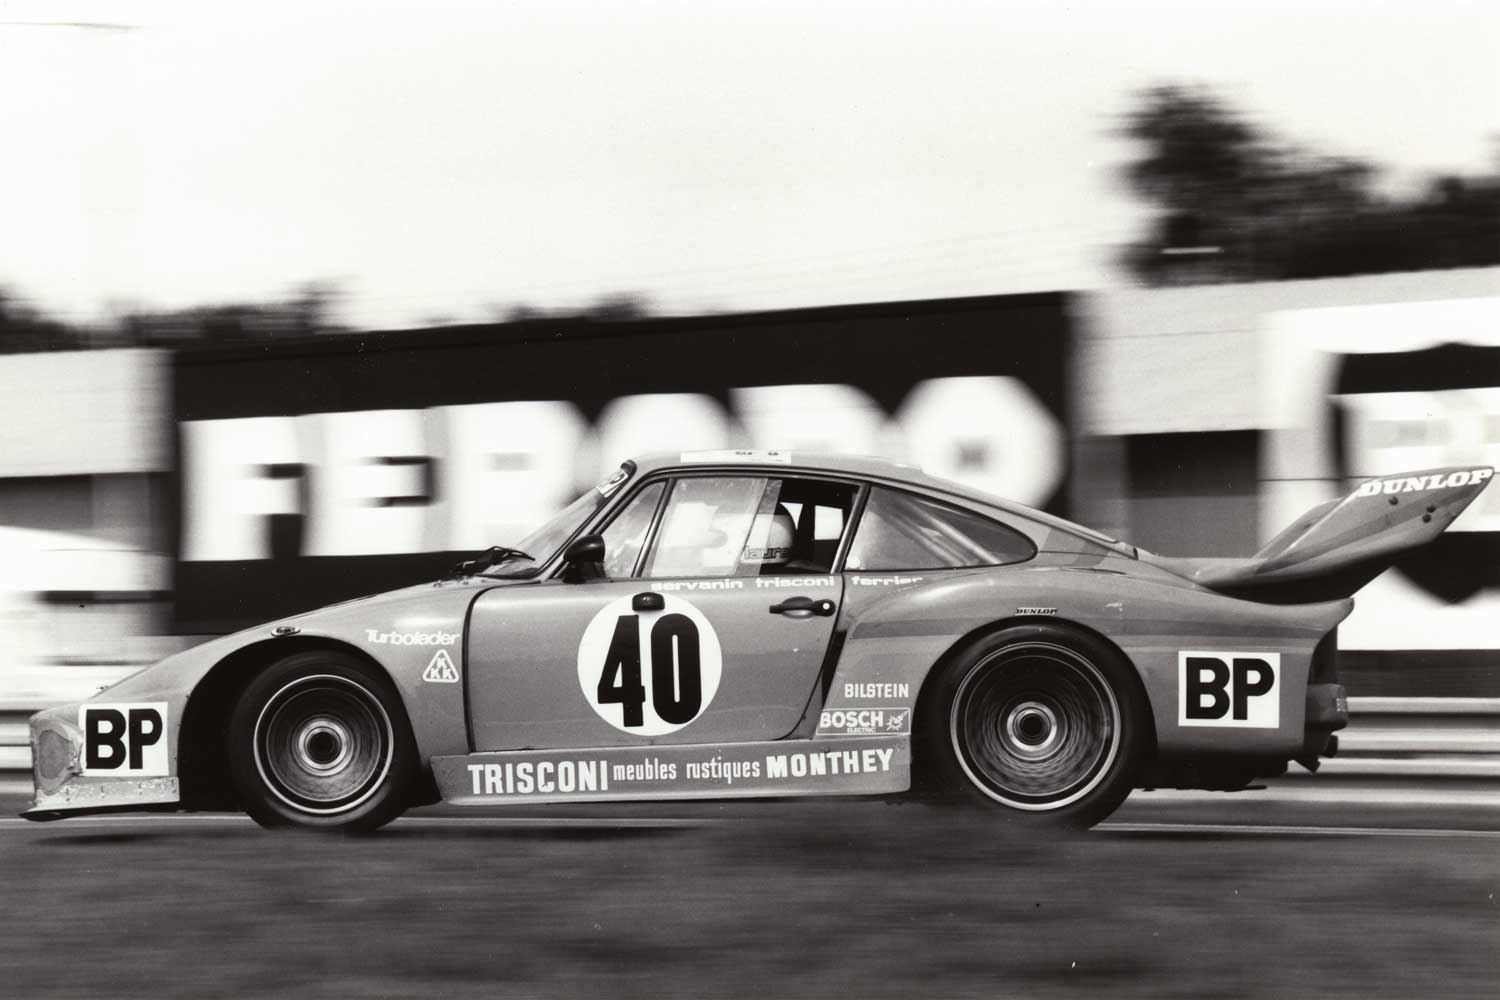 Ferrier's team drove a Porsche 935 at Le Mans, 1979